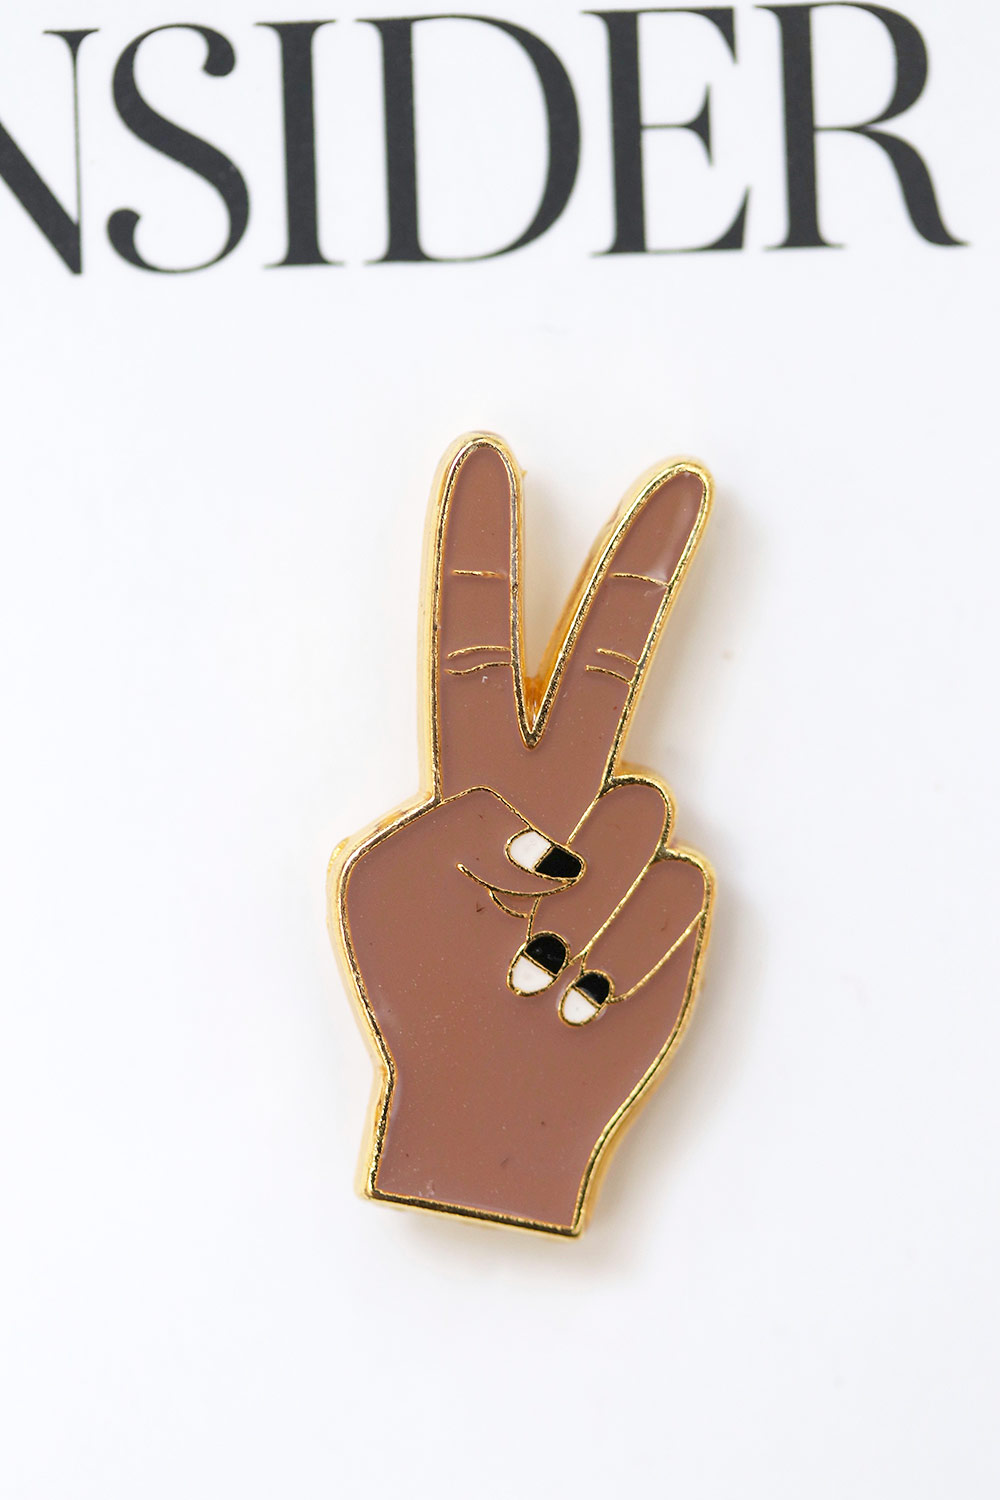 sephora beauty insider collectible pins peace